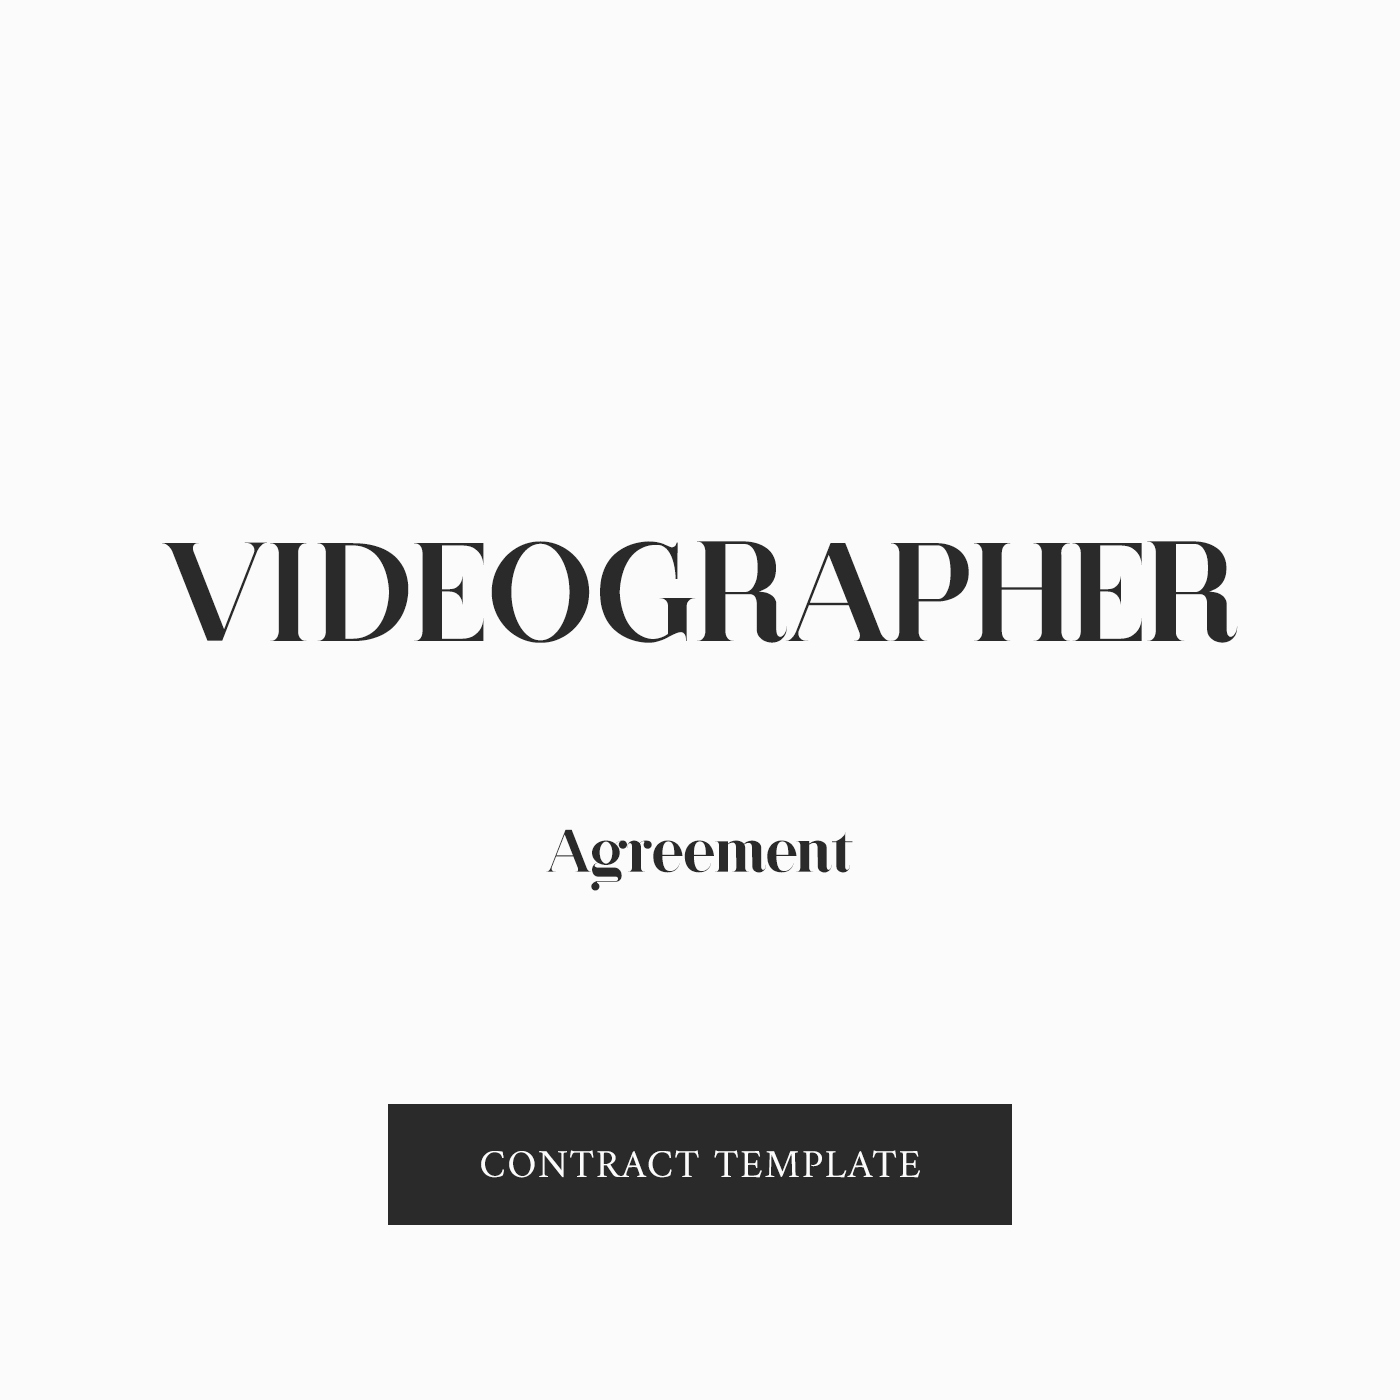 Wedding Videographer Contract Template Beautiful Videographer Contract Template Zara Watson Law